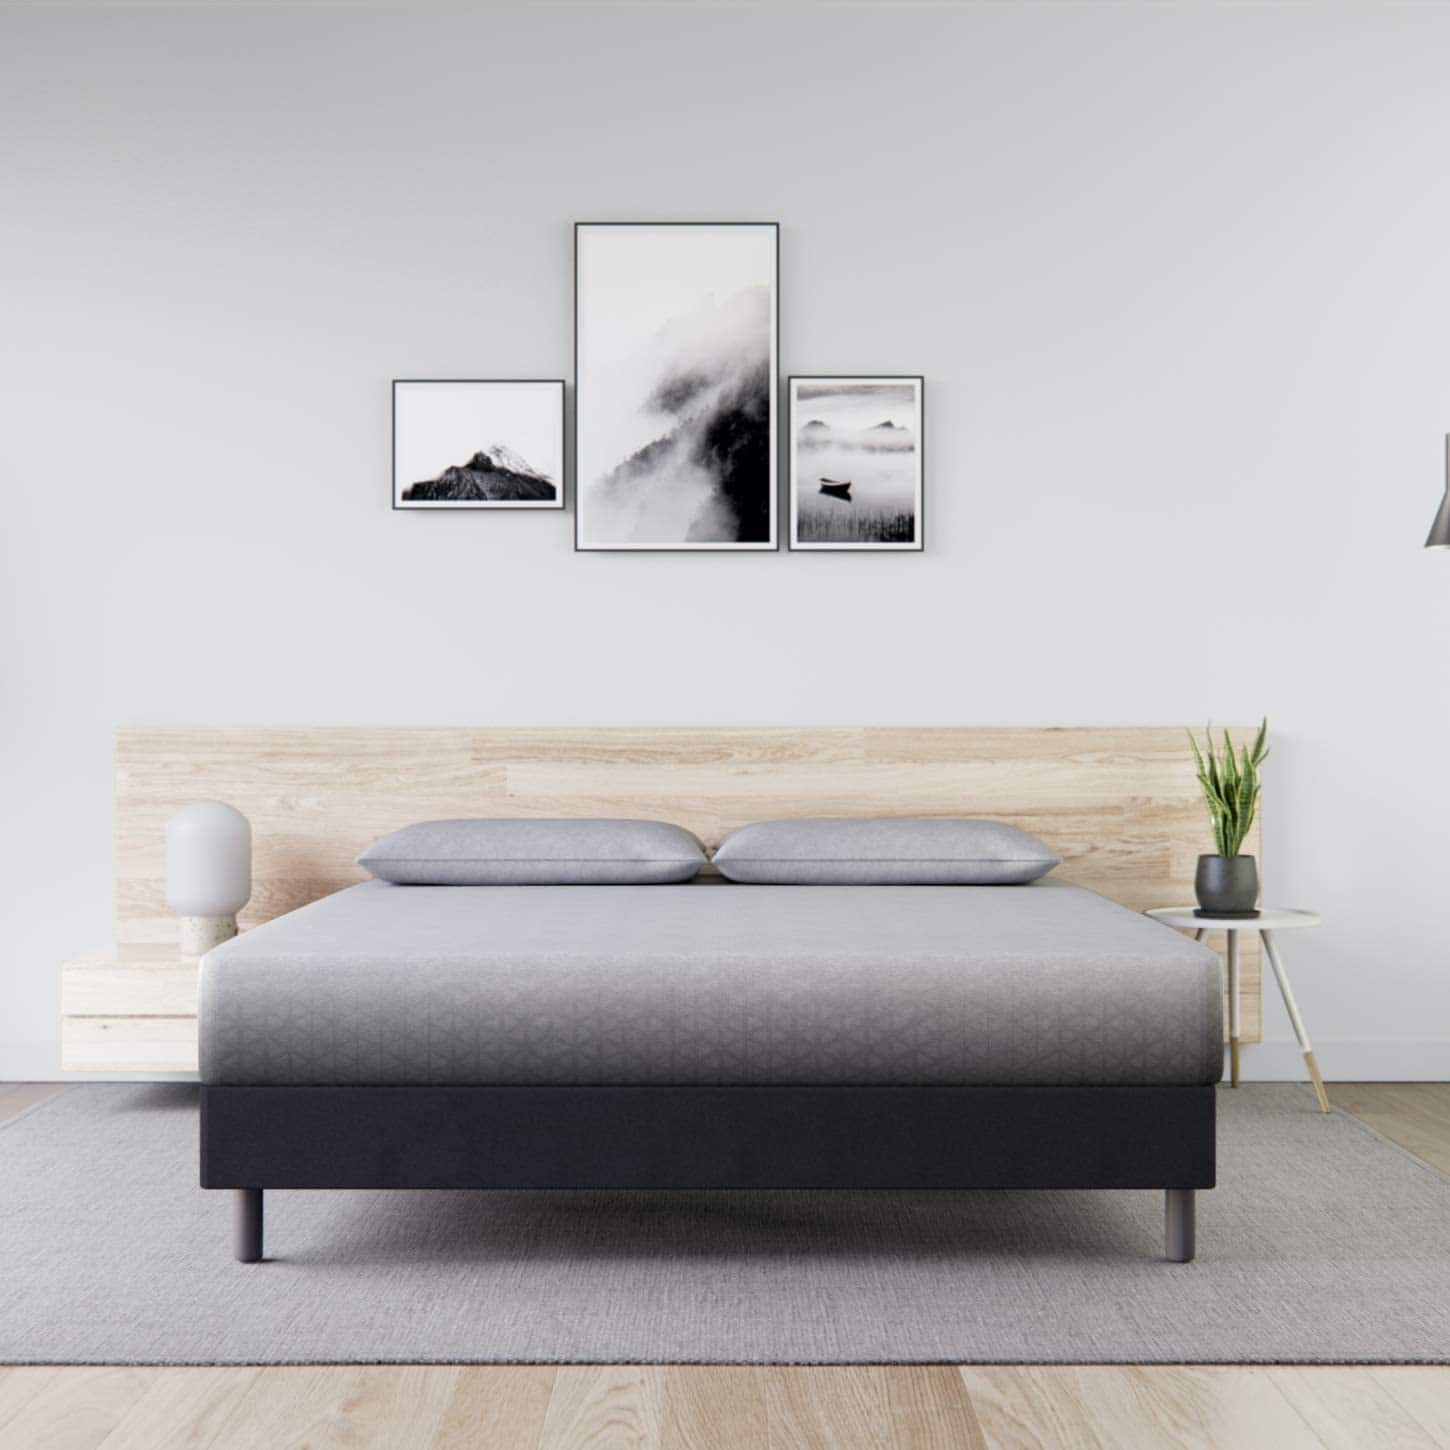 "ZOMA Sleep 11"" Memory Foam Mattress: Queen $425, King $475 + Free S/H *Limited stock"